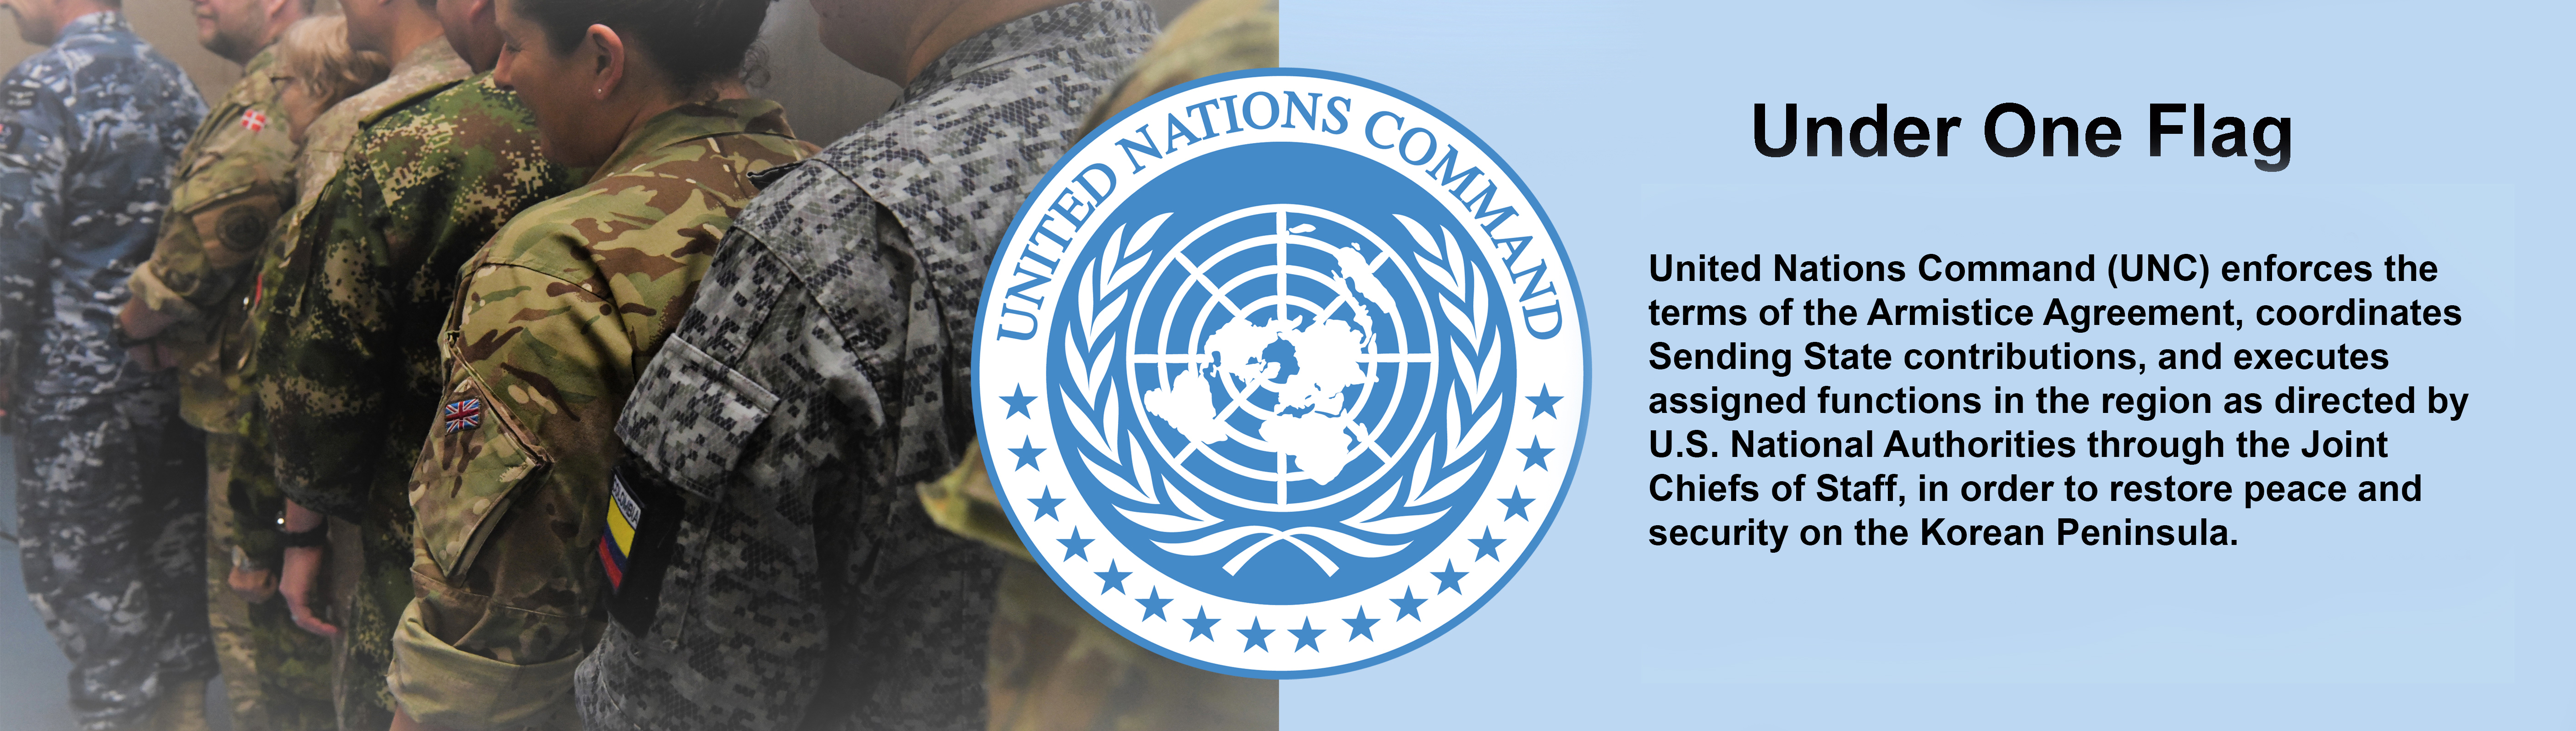 United Nations Command